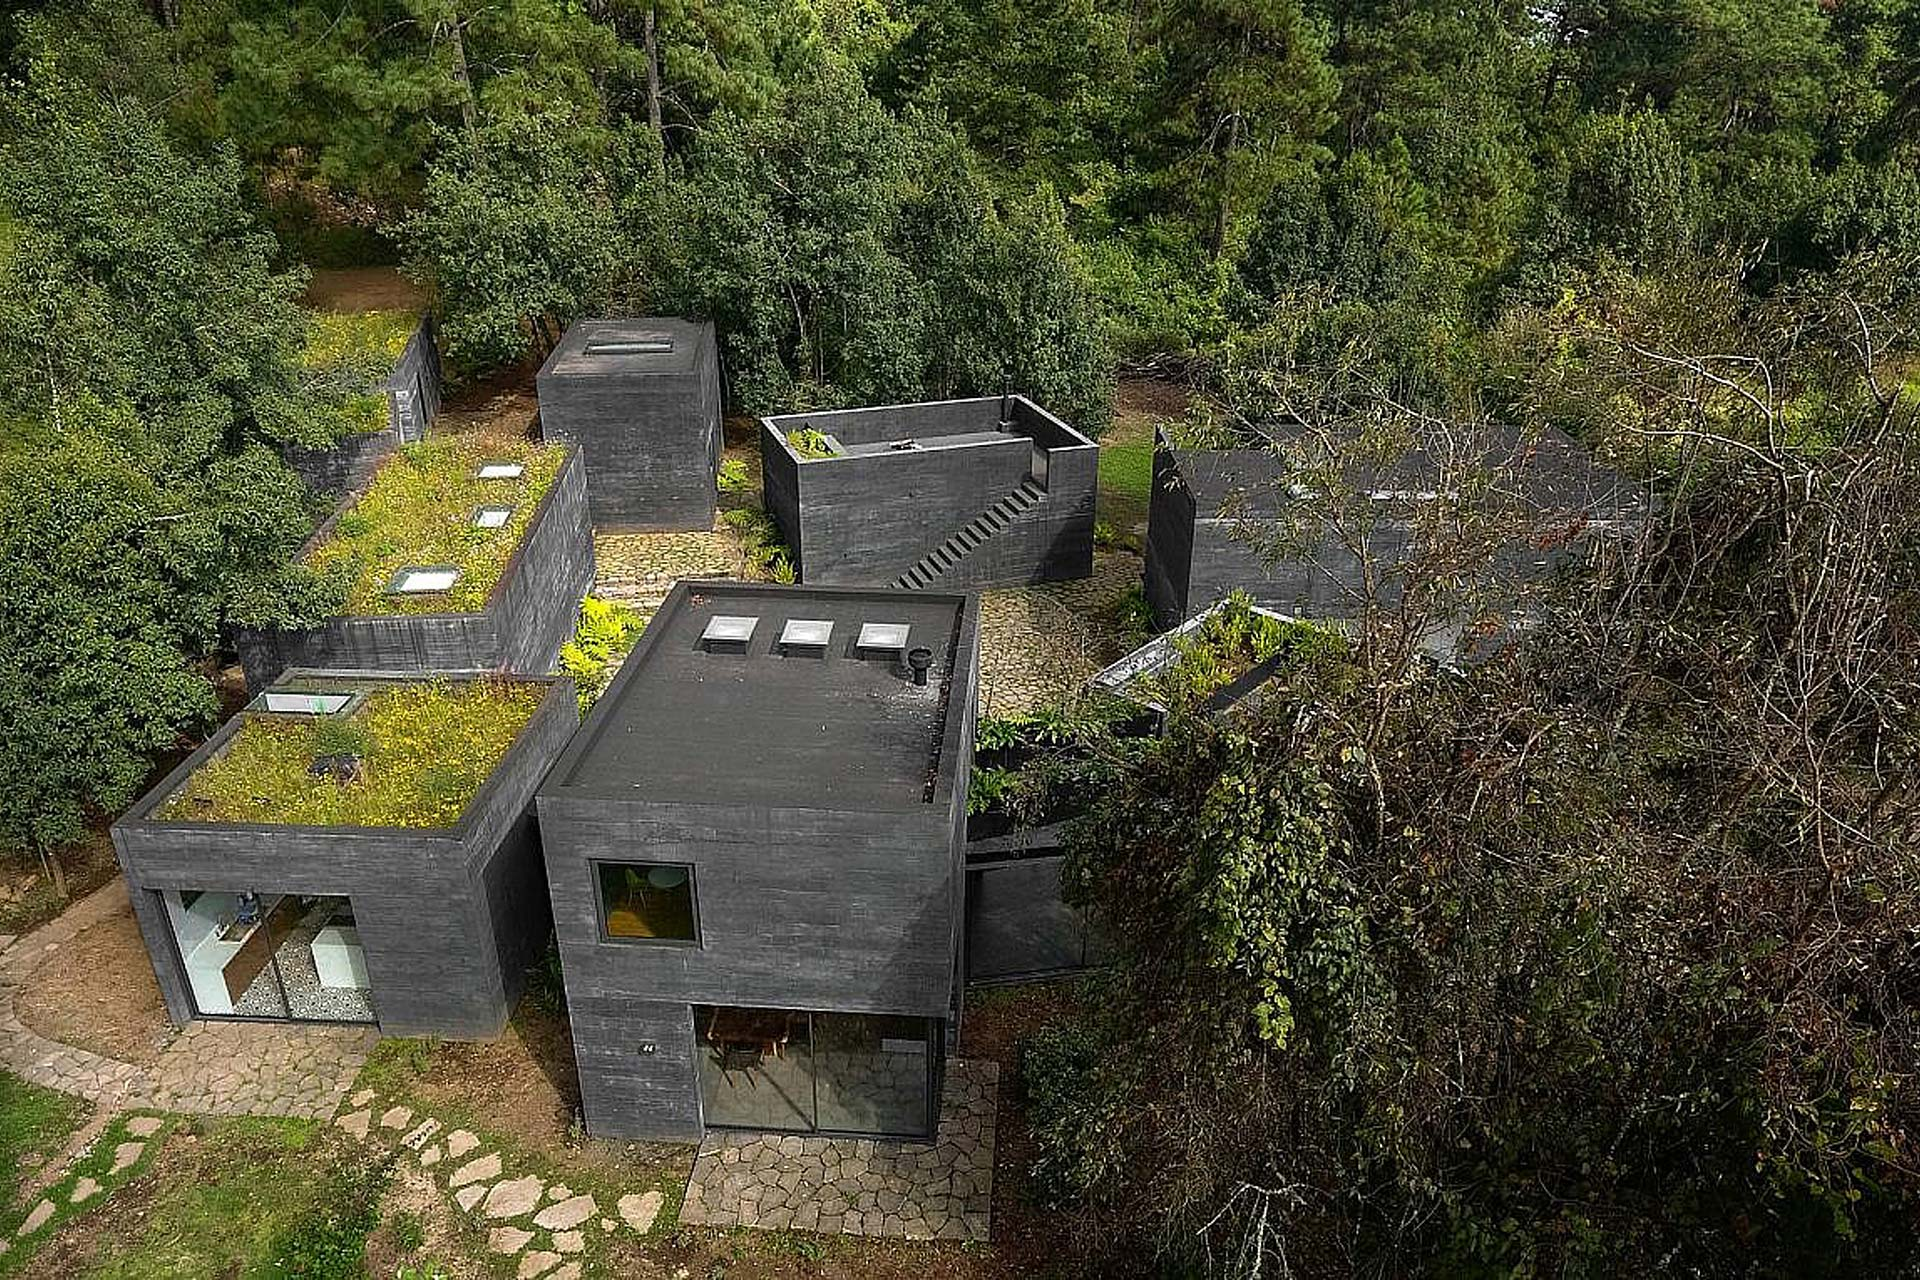 Aerial shot of exterior of house